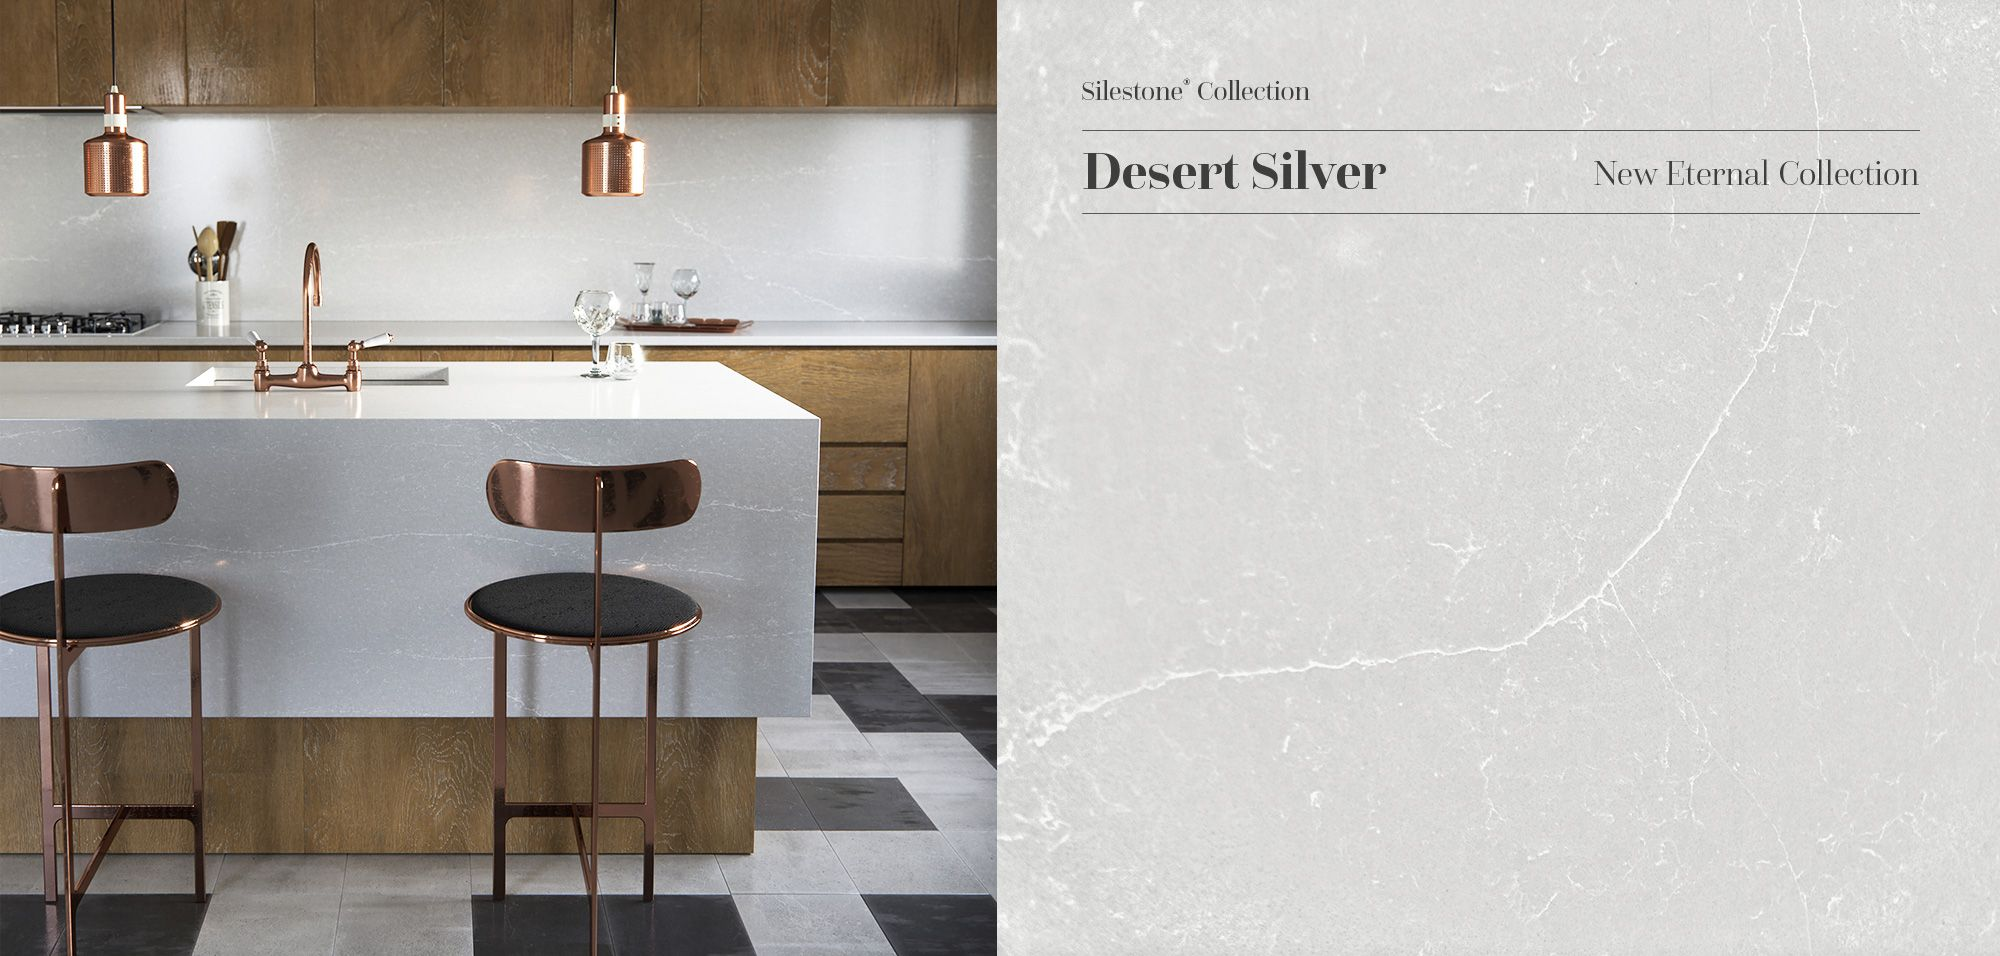 More Monochromatic In Its Appearance Silestone Desert